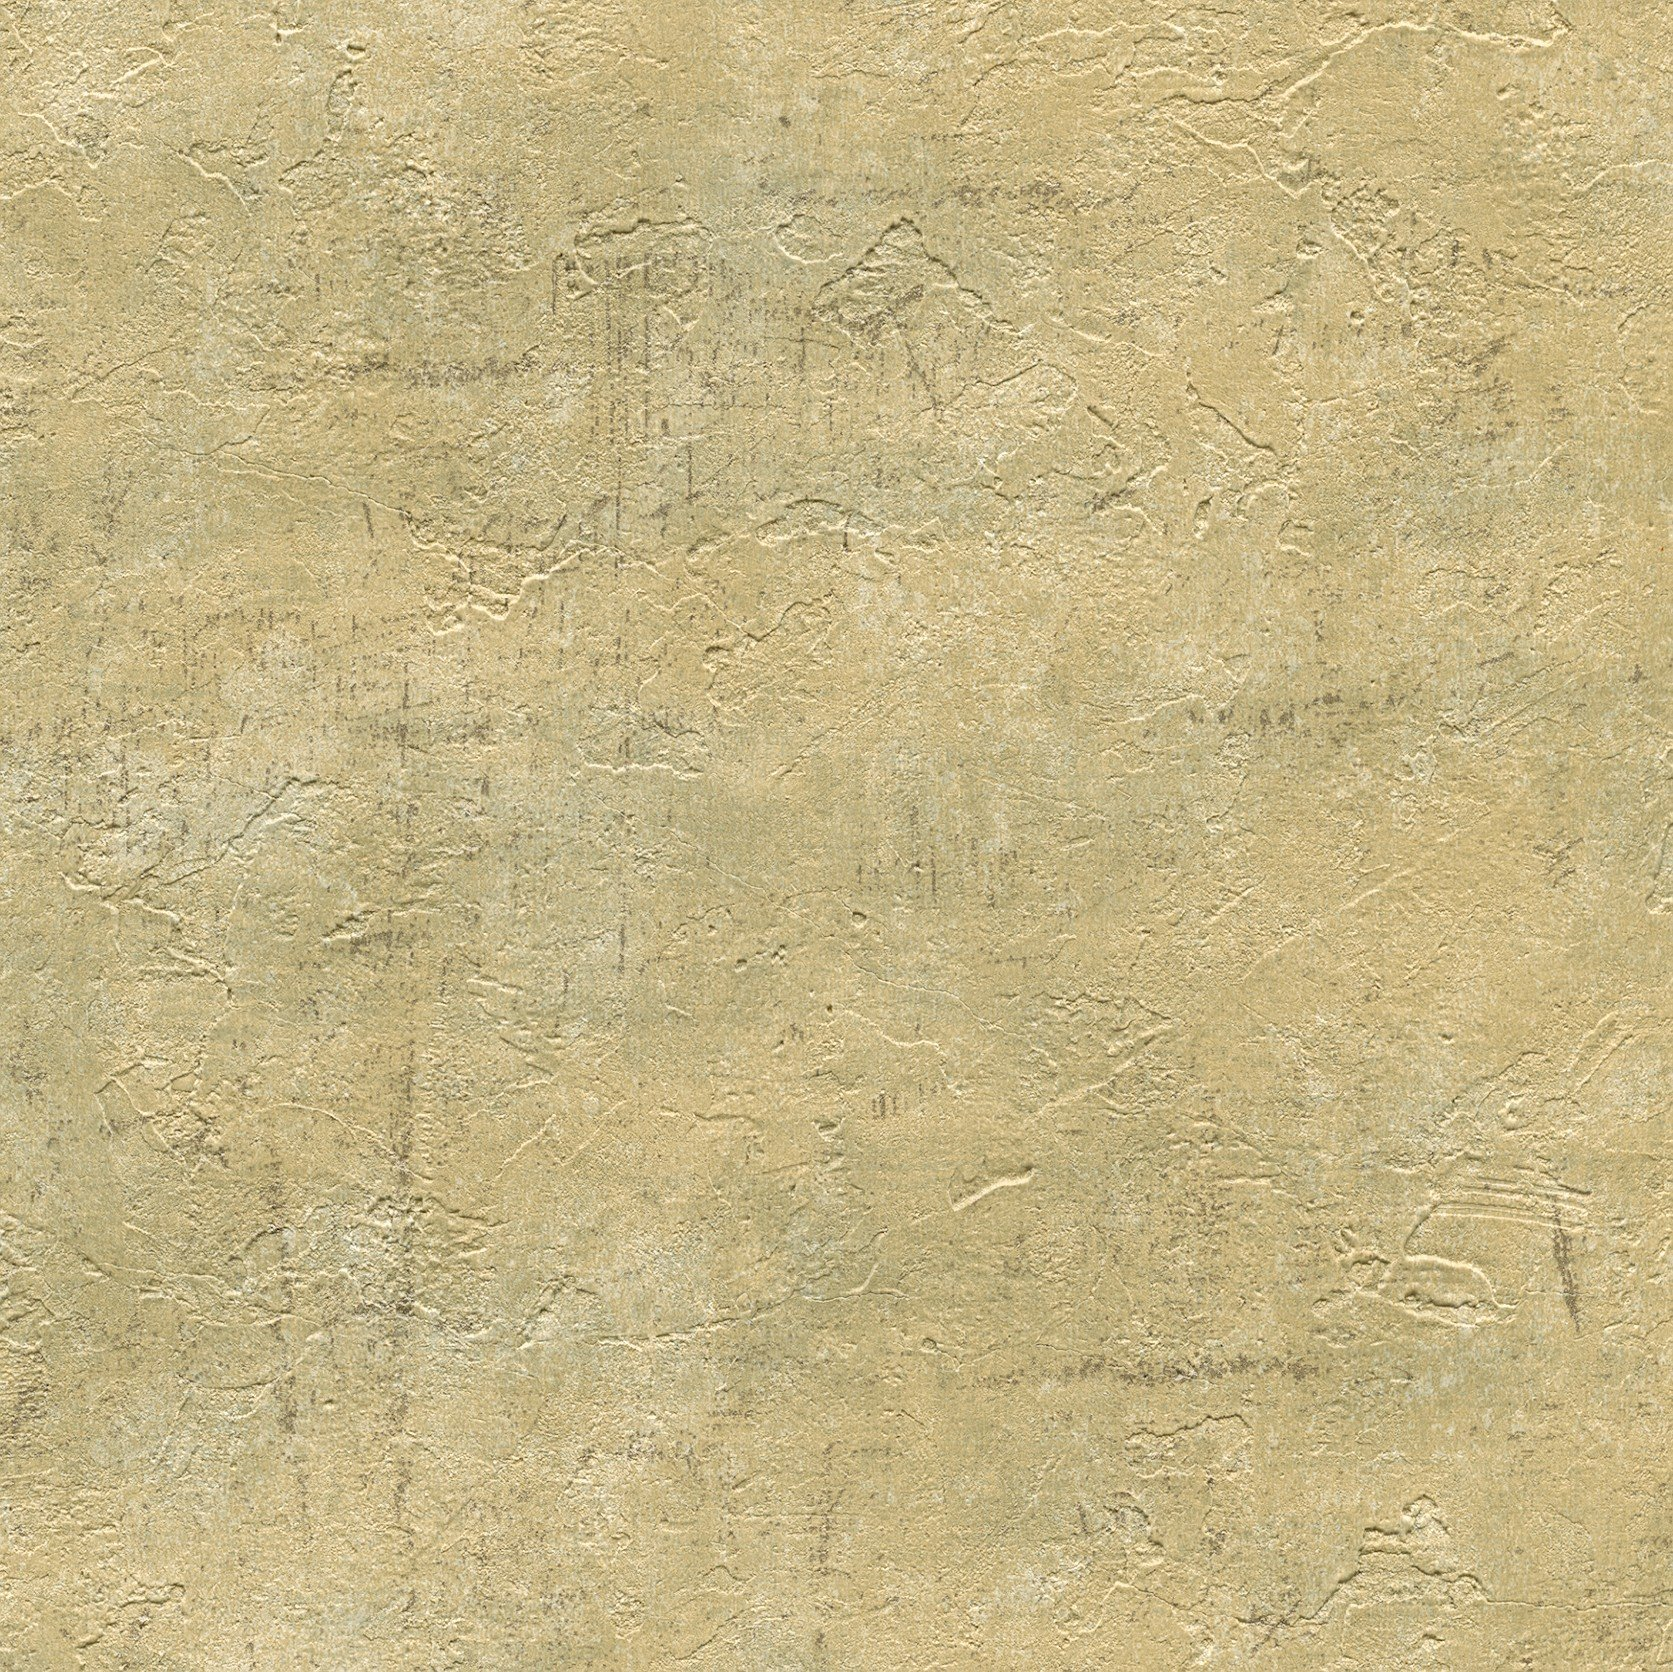 Warner WD3070 Plumant Gold Faux Plaster Texture Wallpaper, Bronze by Warner Manufacturing